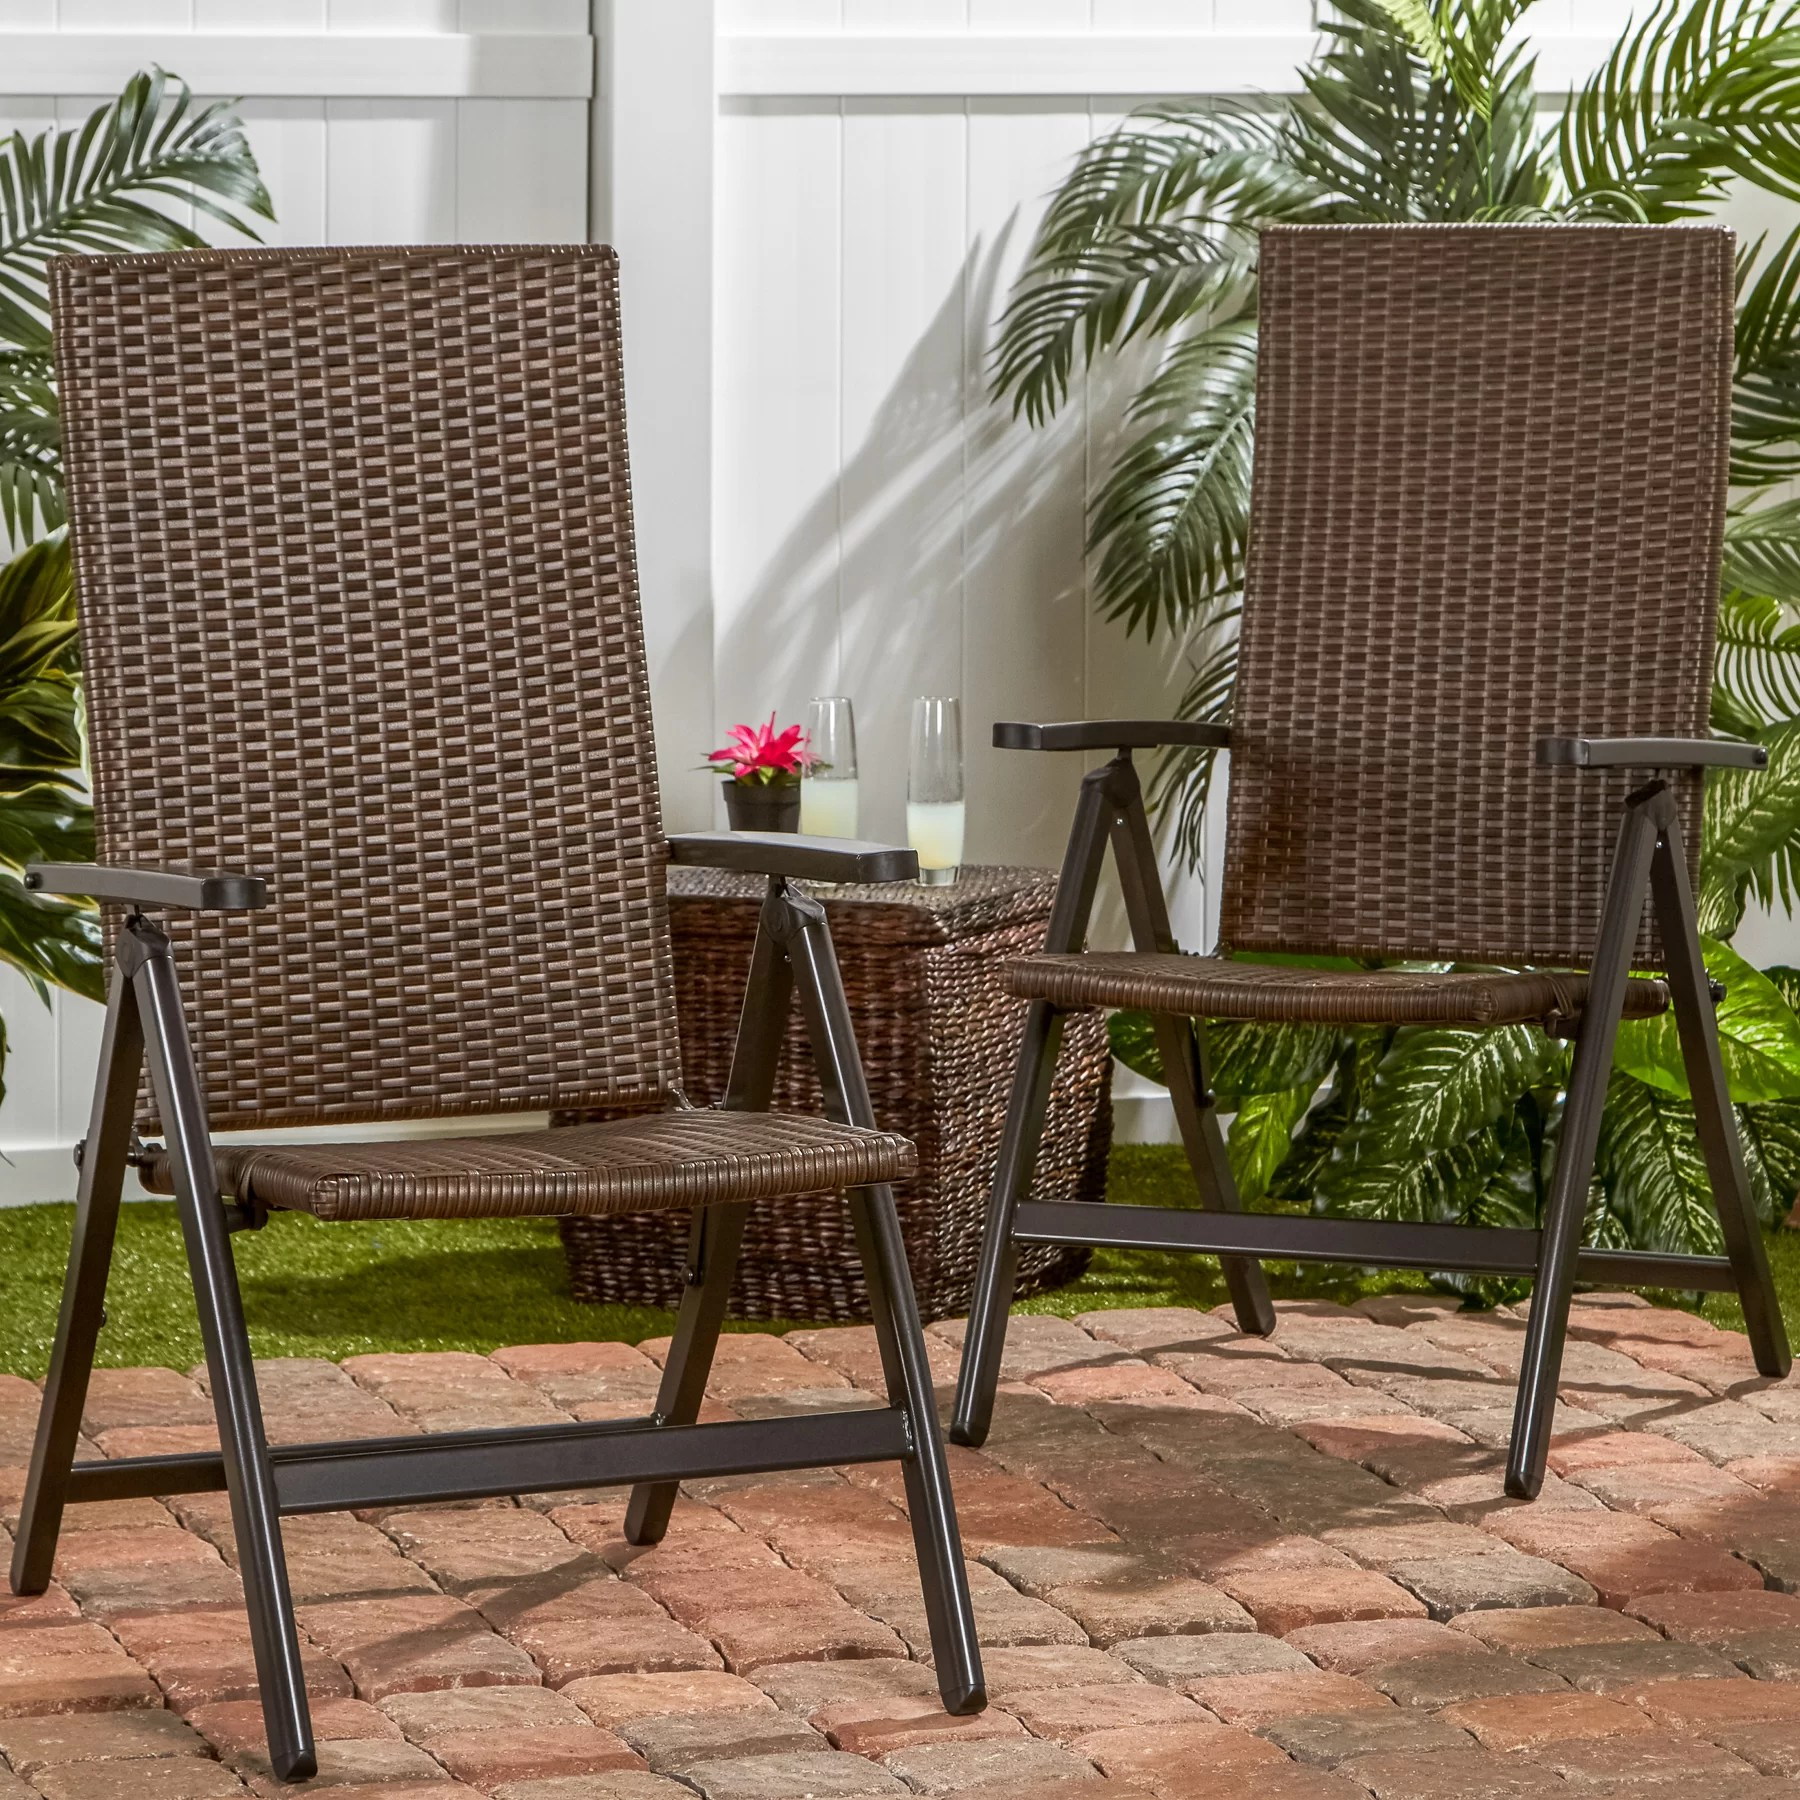 woven outdoor chair king chairs greendale home fashions wicker reclining zero